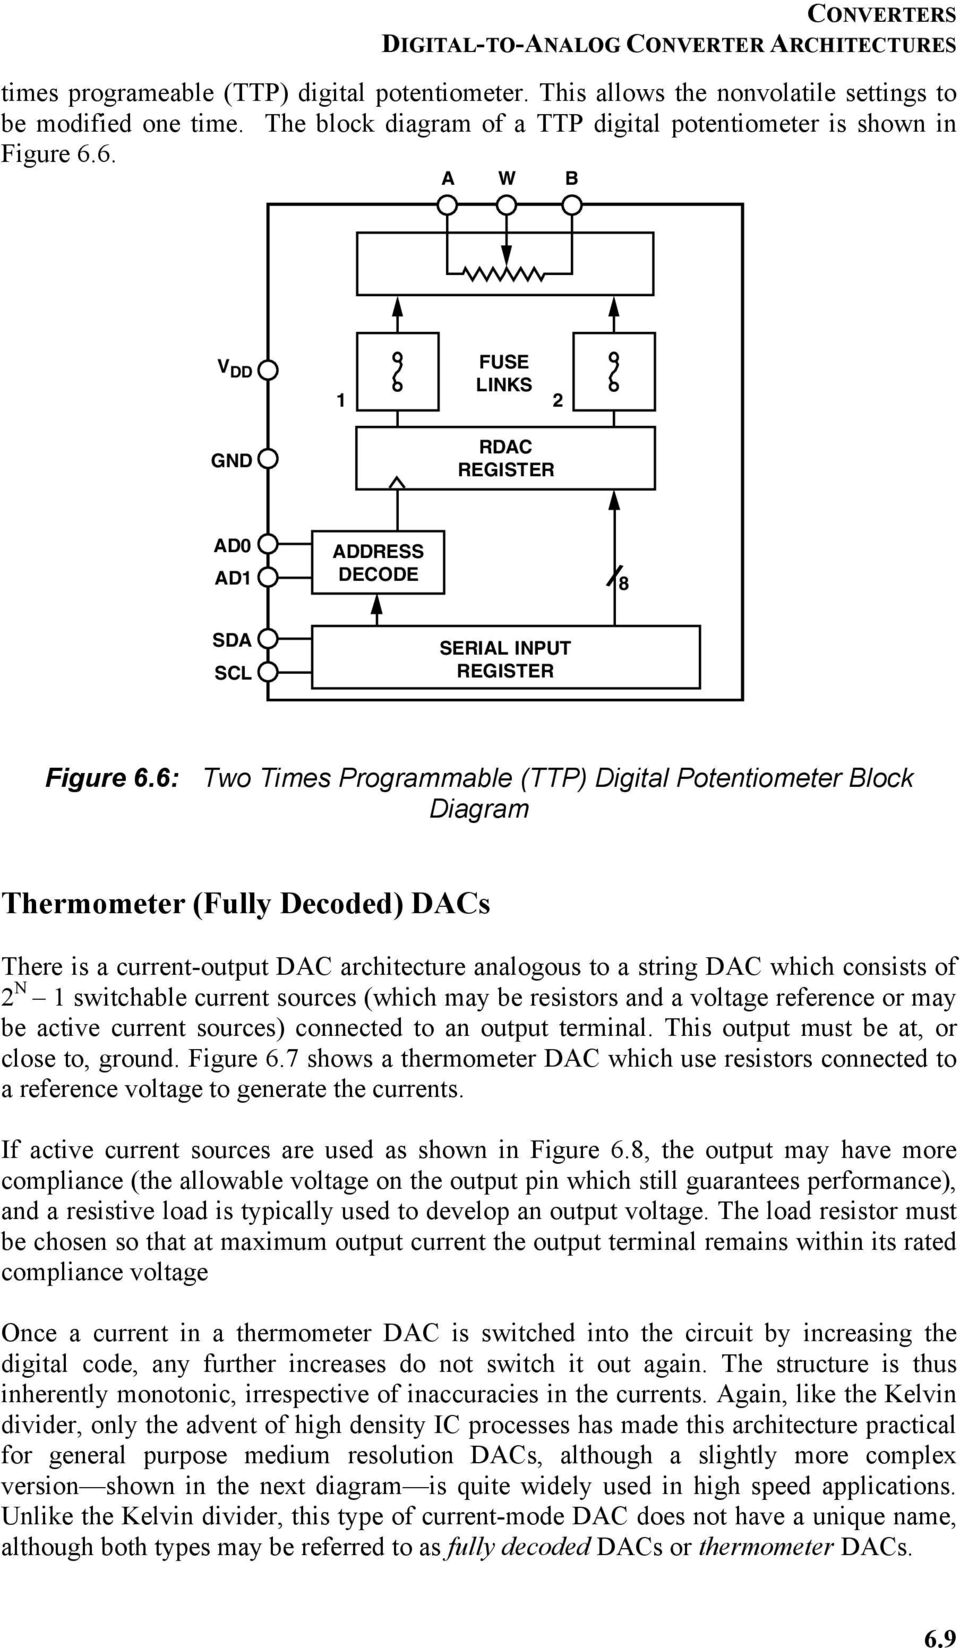 Chapter 6 Converters Pdf This Digitaltoanalog Converter Dac Integrated Circuit Is Designed Two Times Programmable Ttp Digital Potentiometer Block Diagram Thermometer Fully Decoded